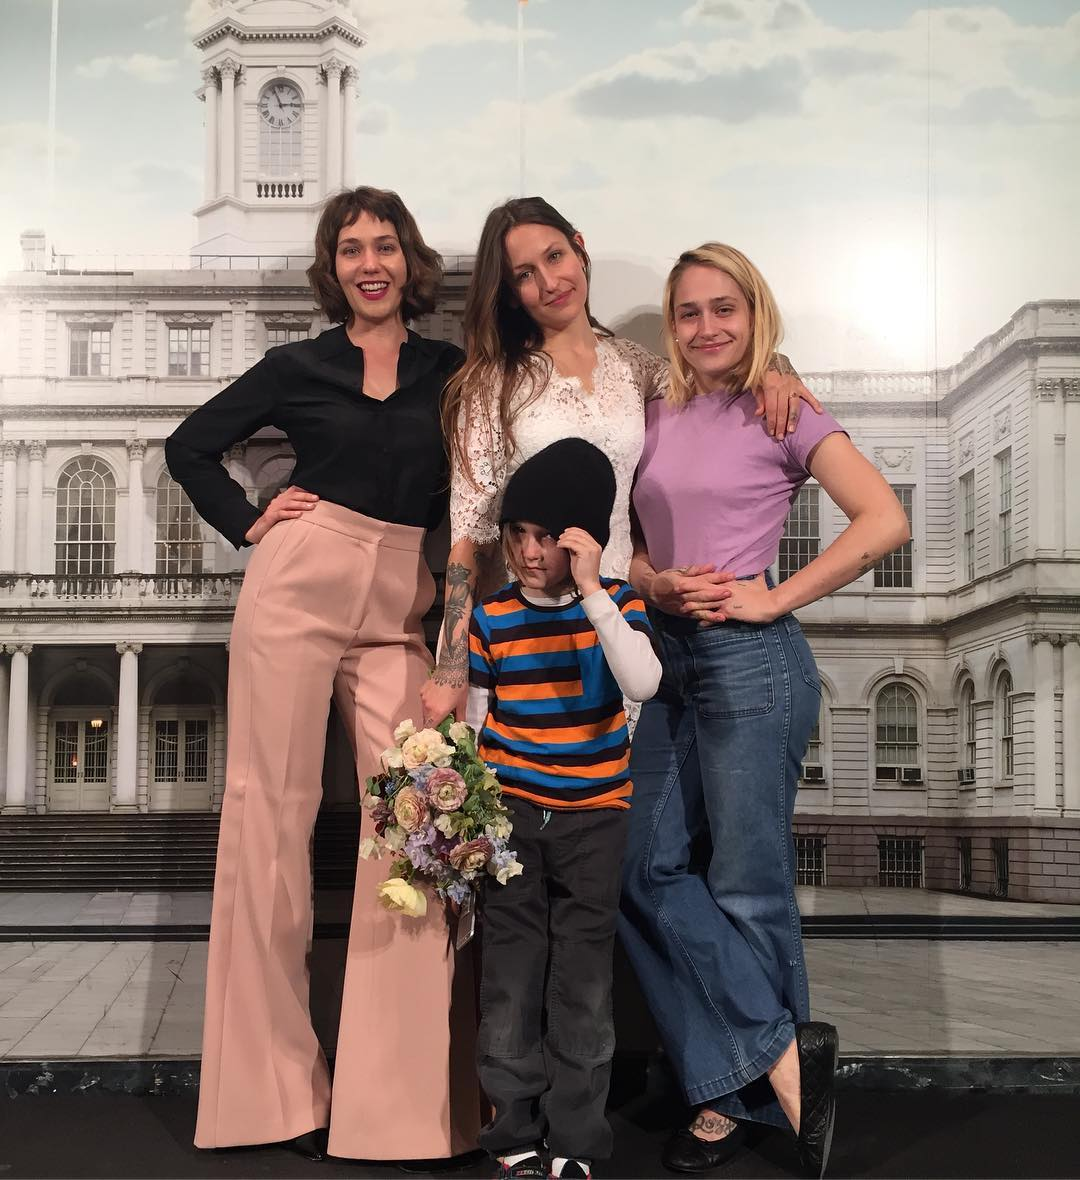 Domino Kirke on her wedding day with sisters Lola Kirke and Jemima Kirke and her son Cassius.